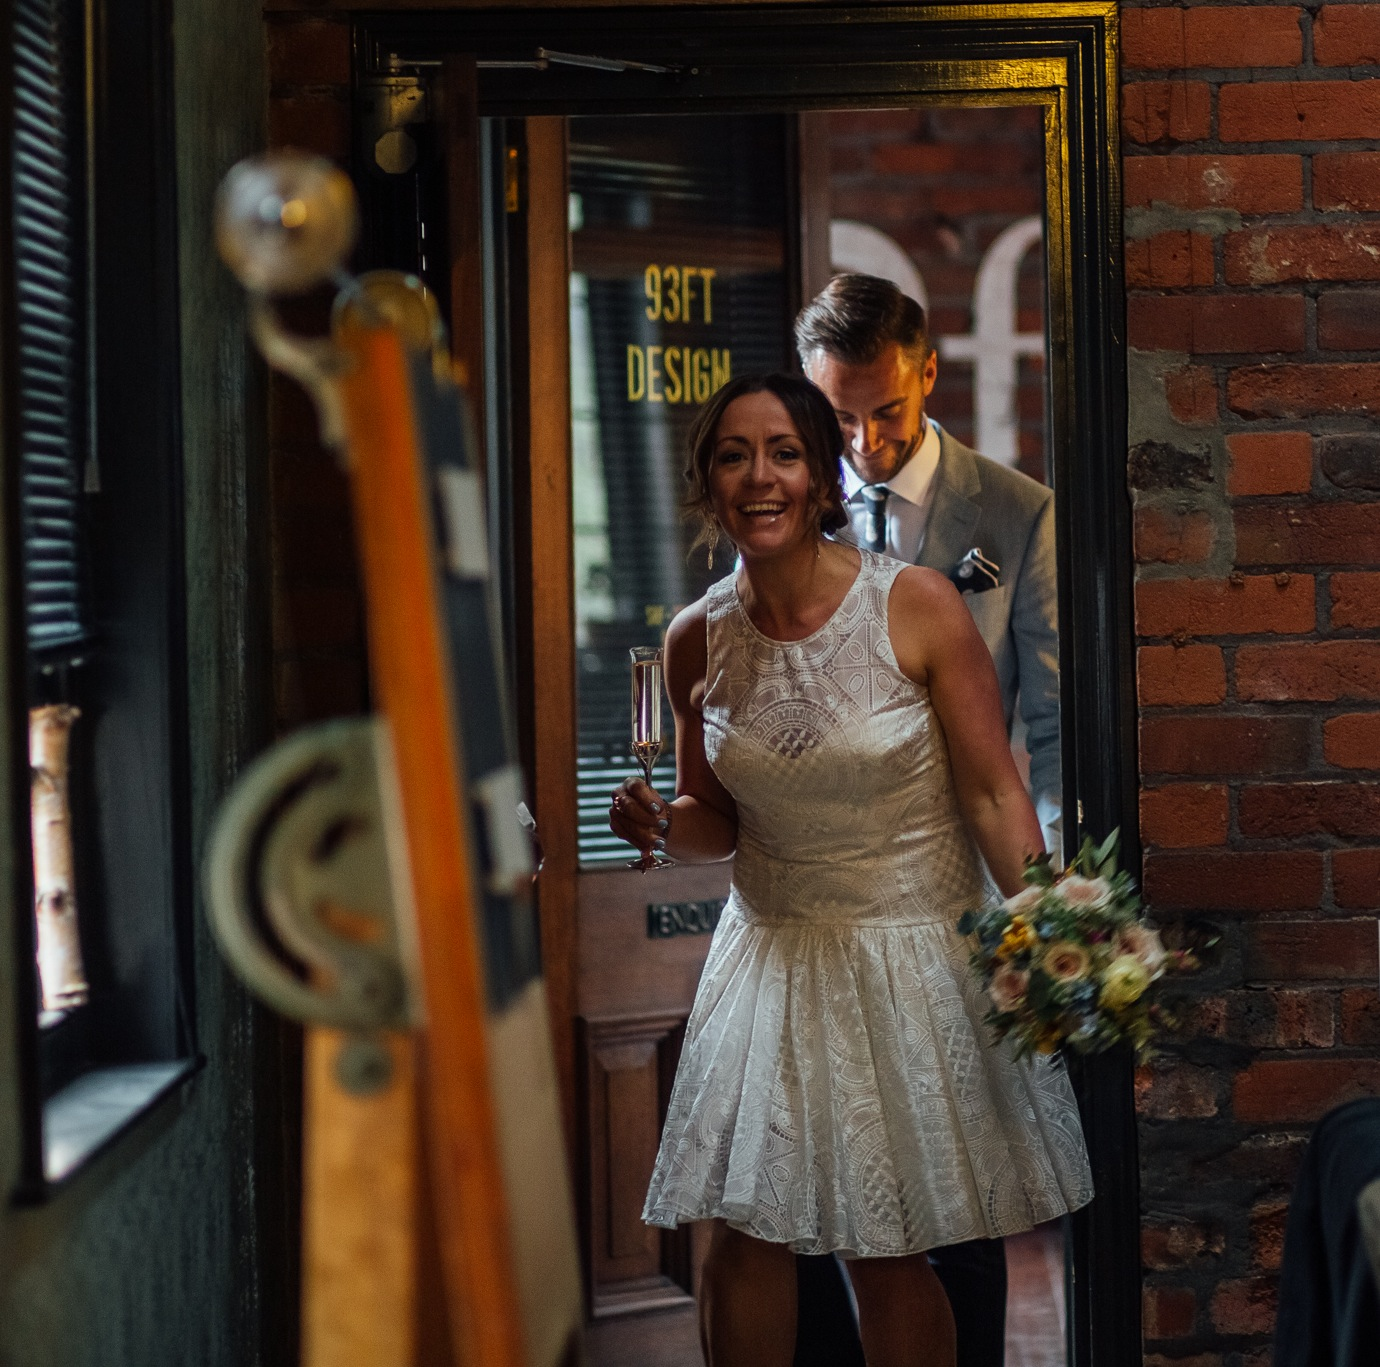 Real Weddings - Lovely Lorna & John - Image 3